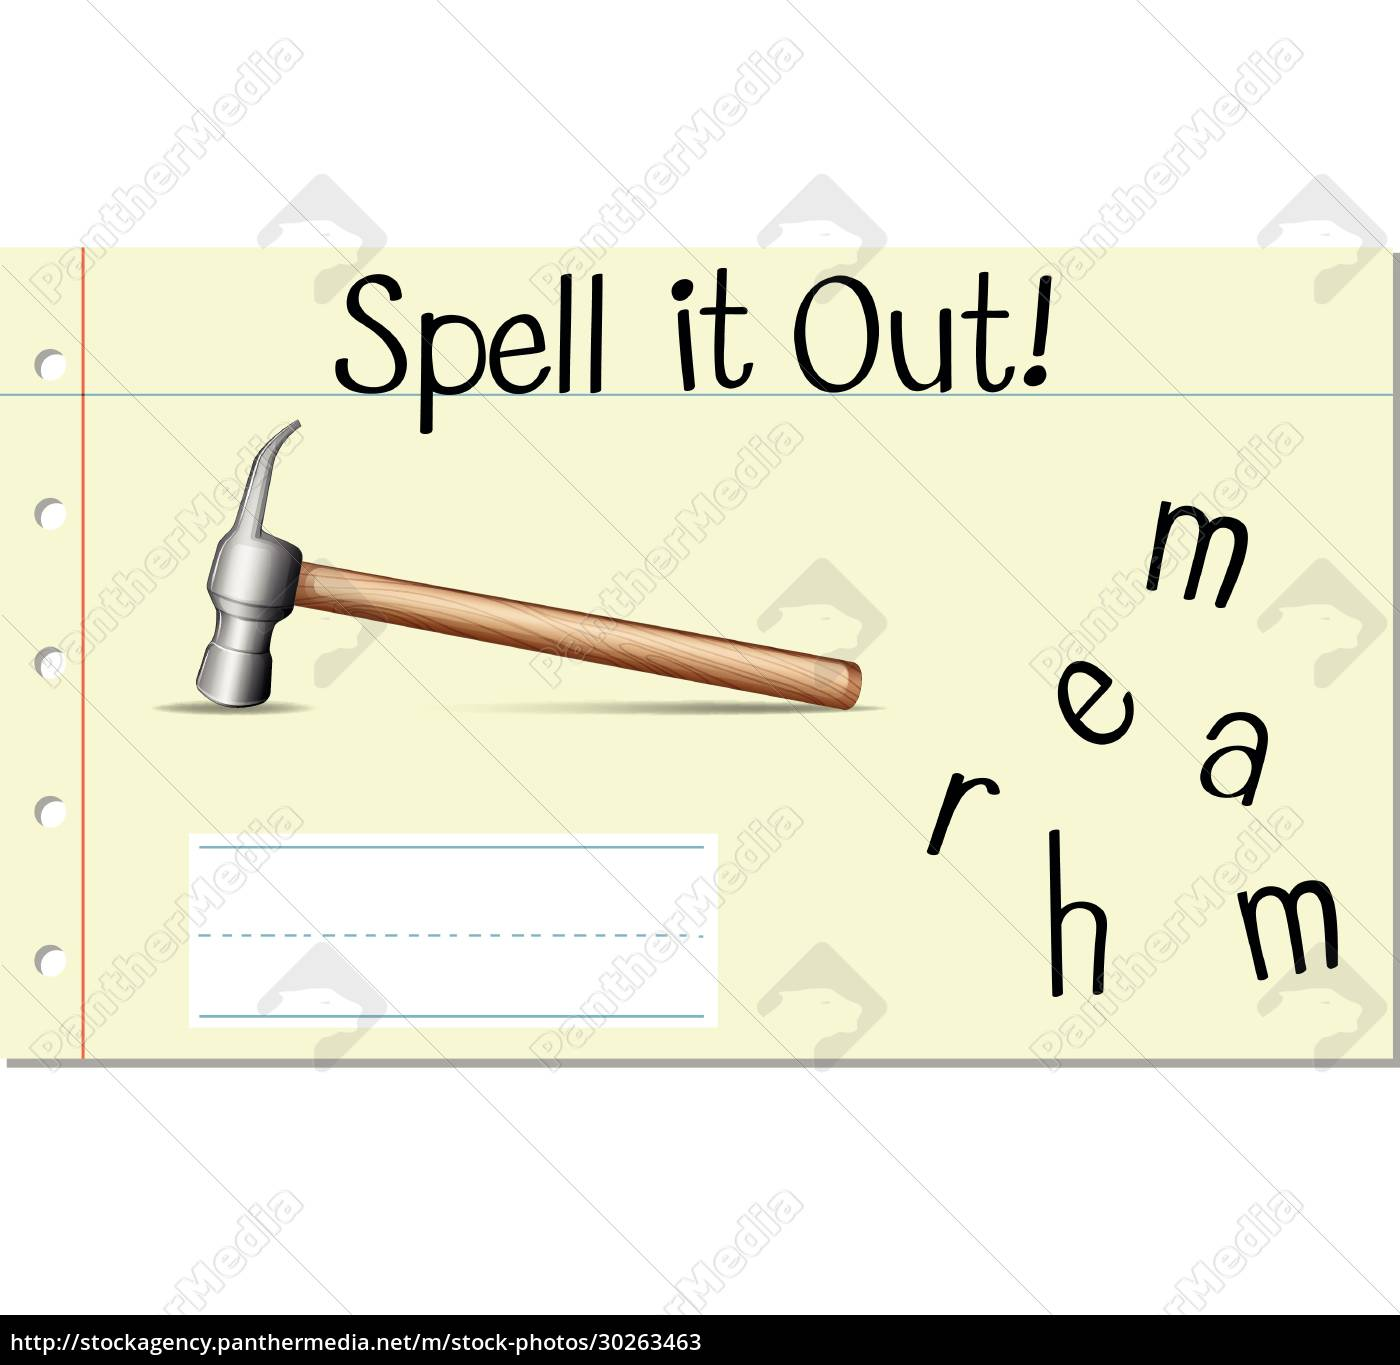 spell, it, out, hammer - 30263463